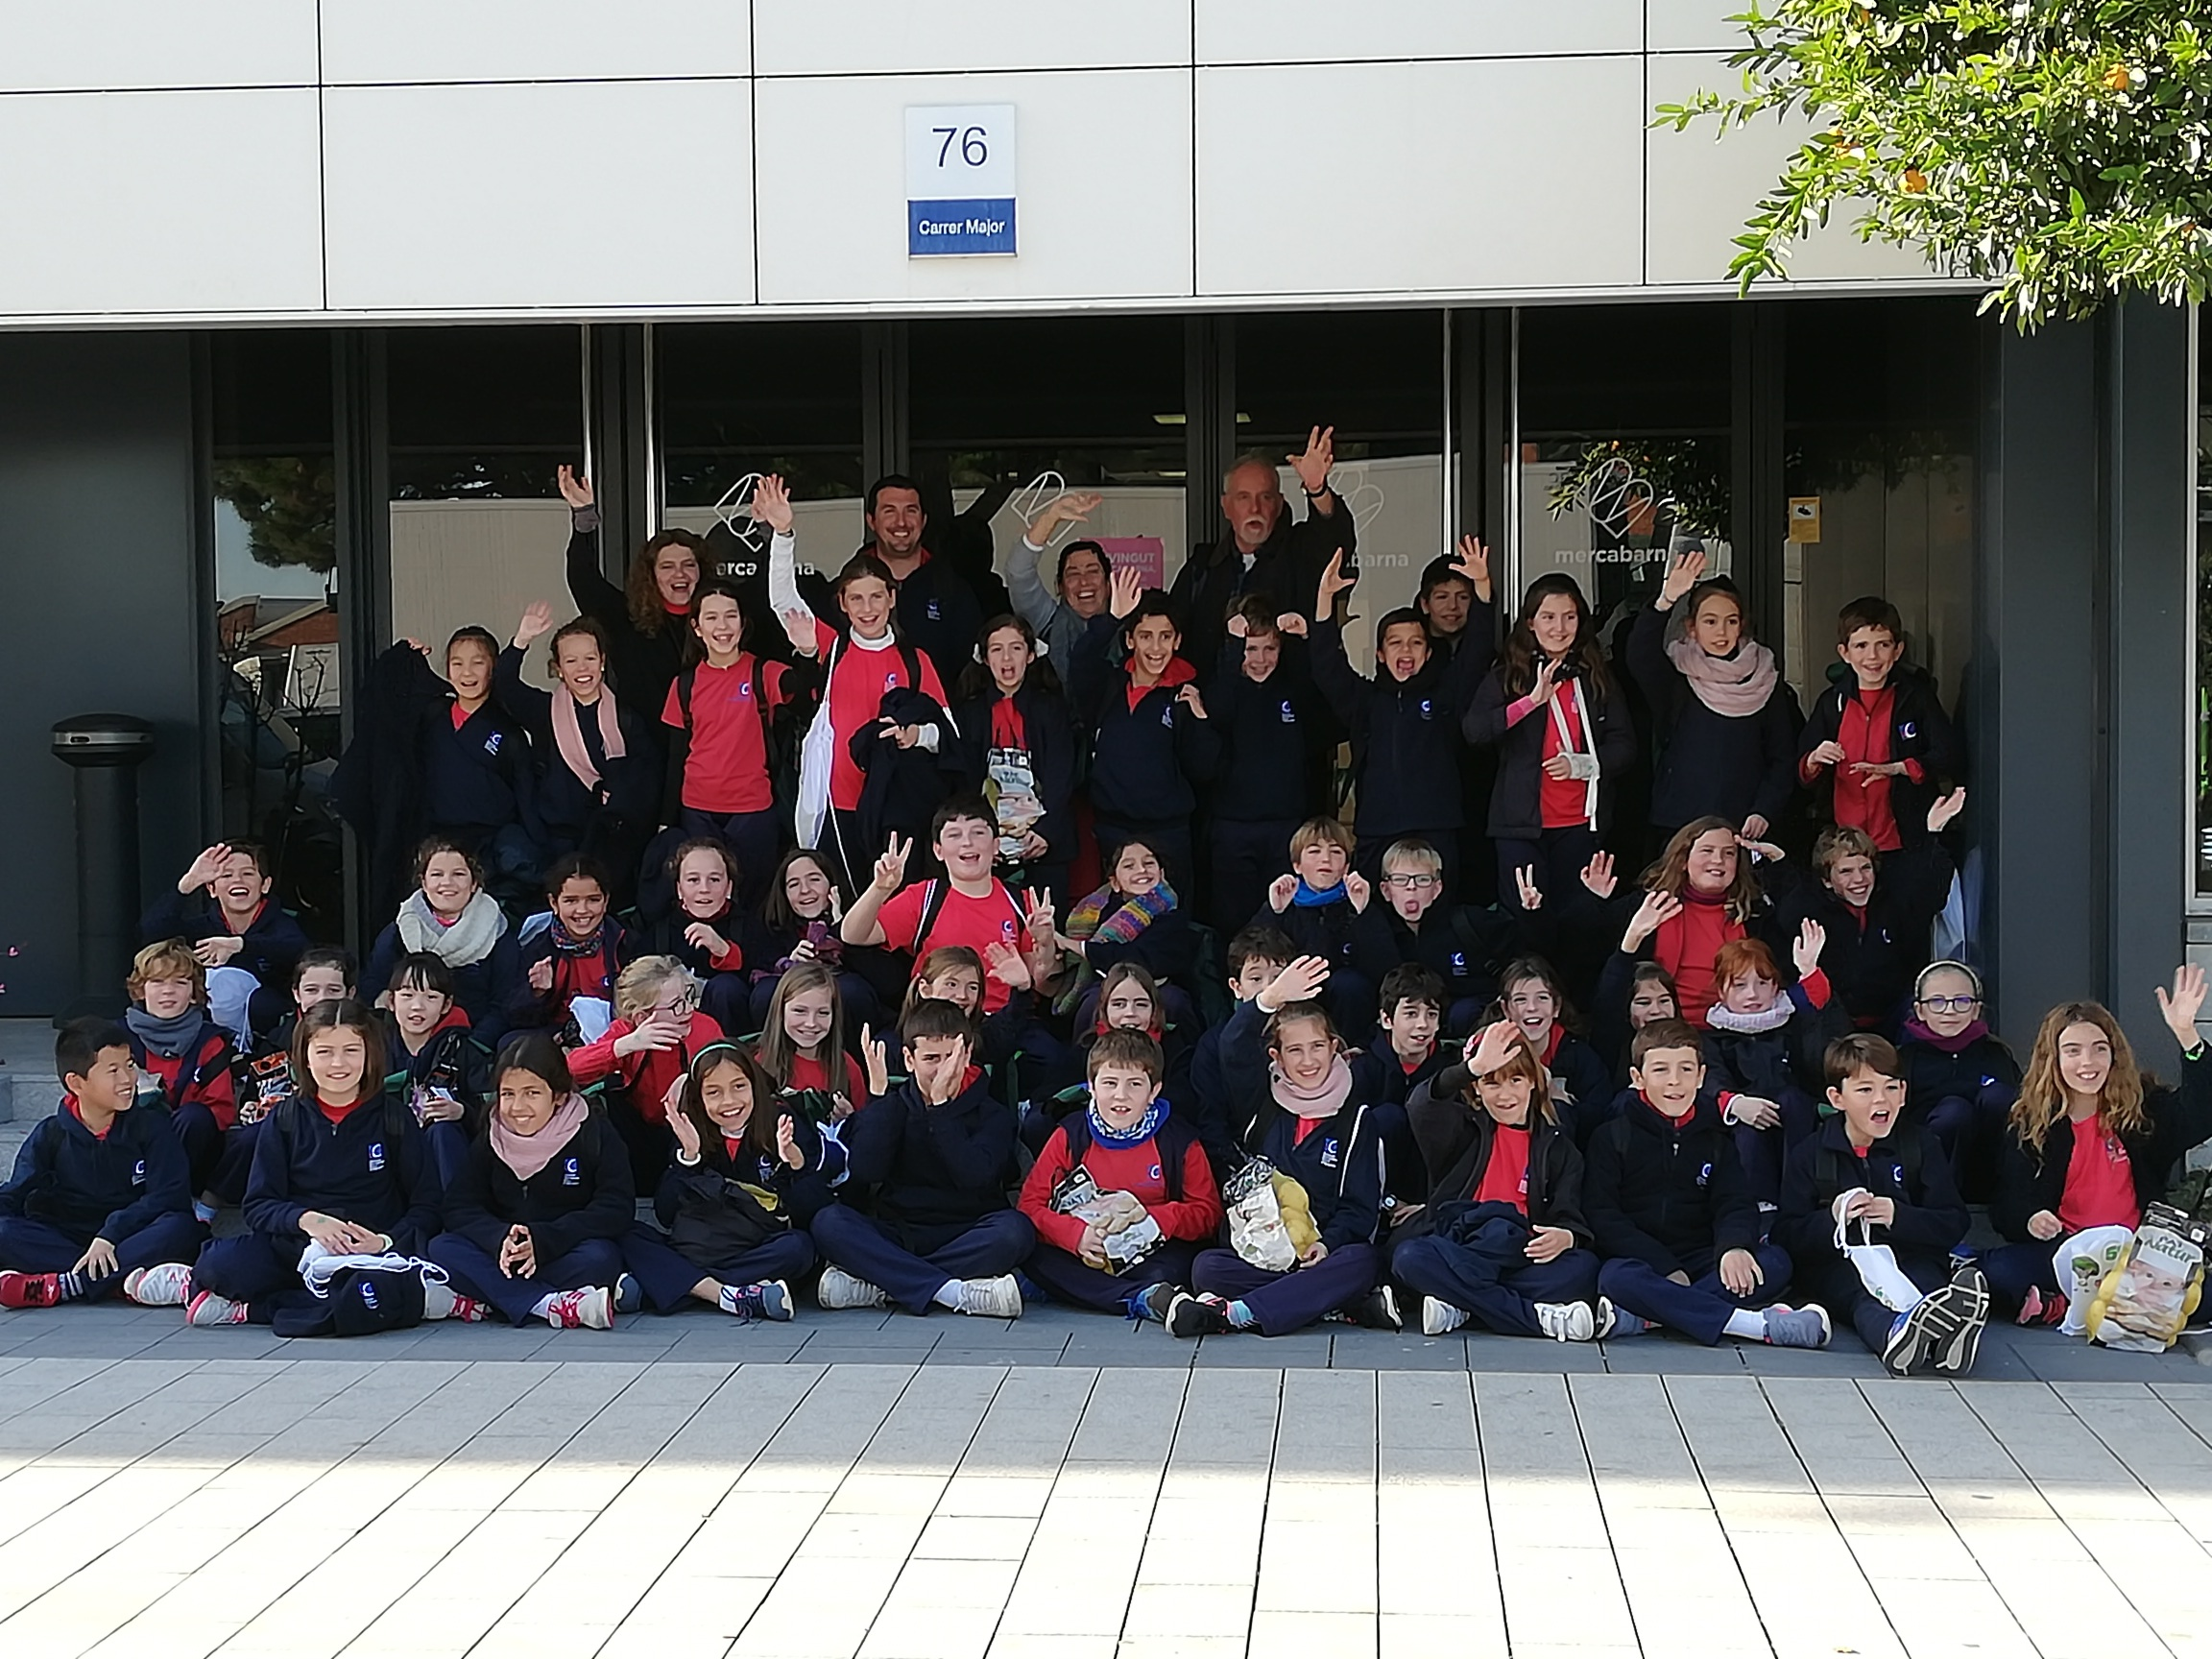 EUROPA INTERNATIONAL SCHOOL (SANT CUGAT)